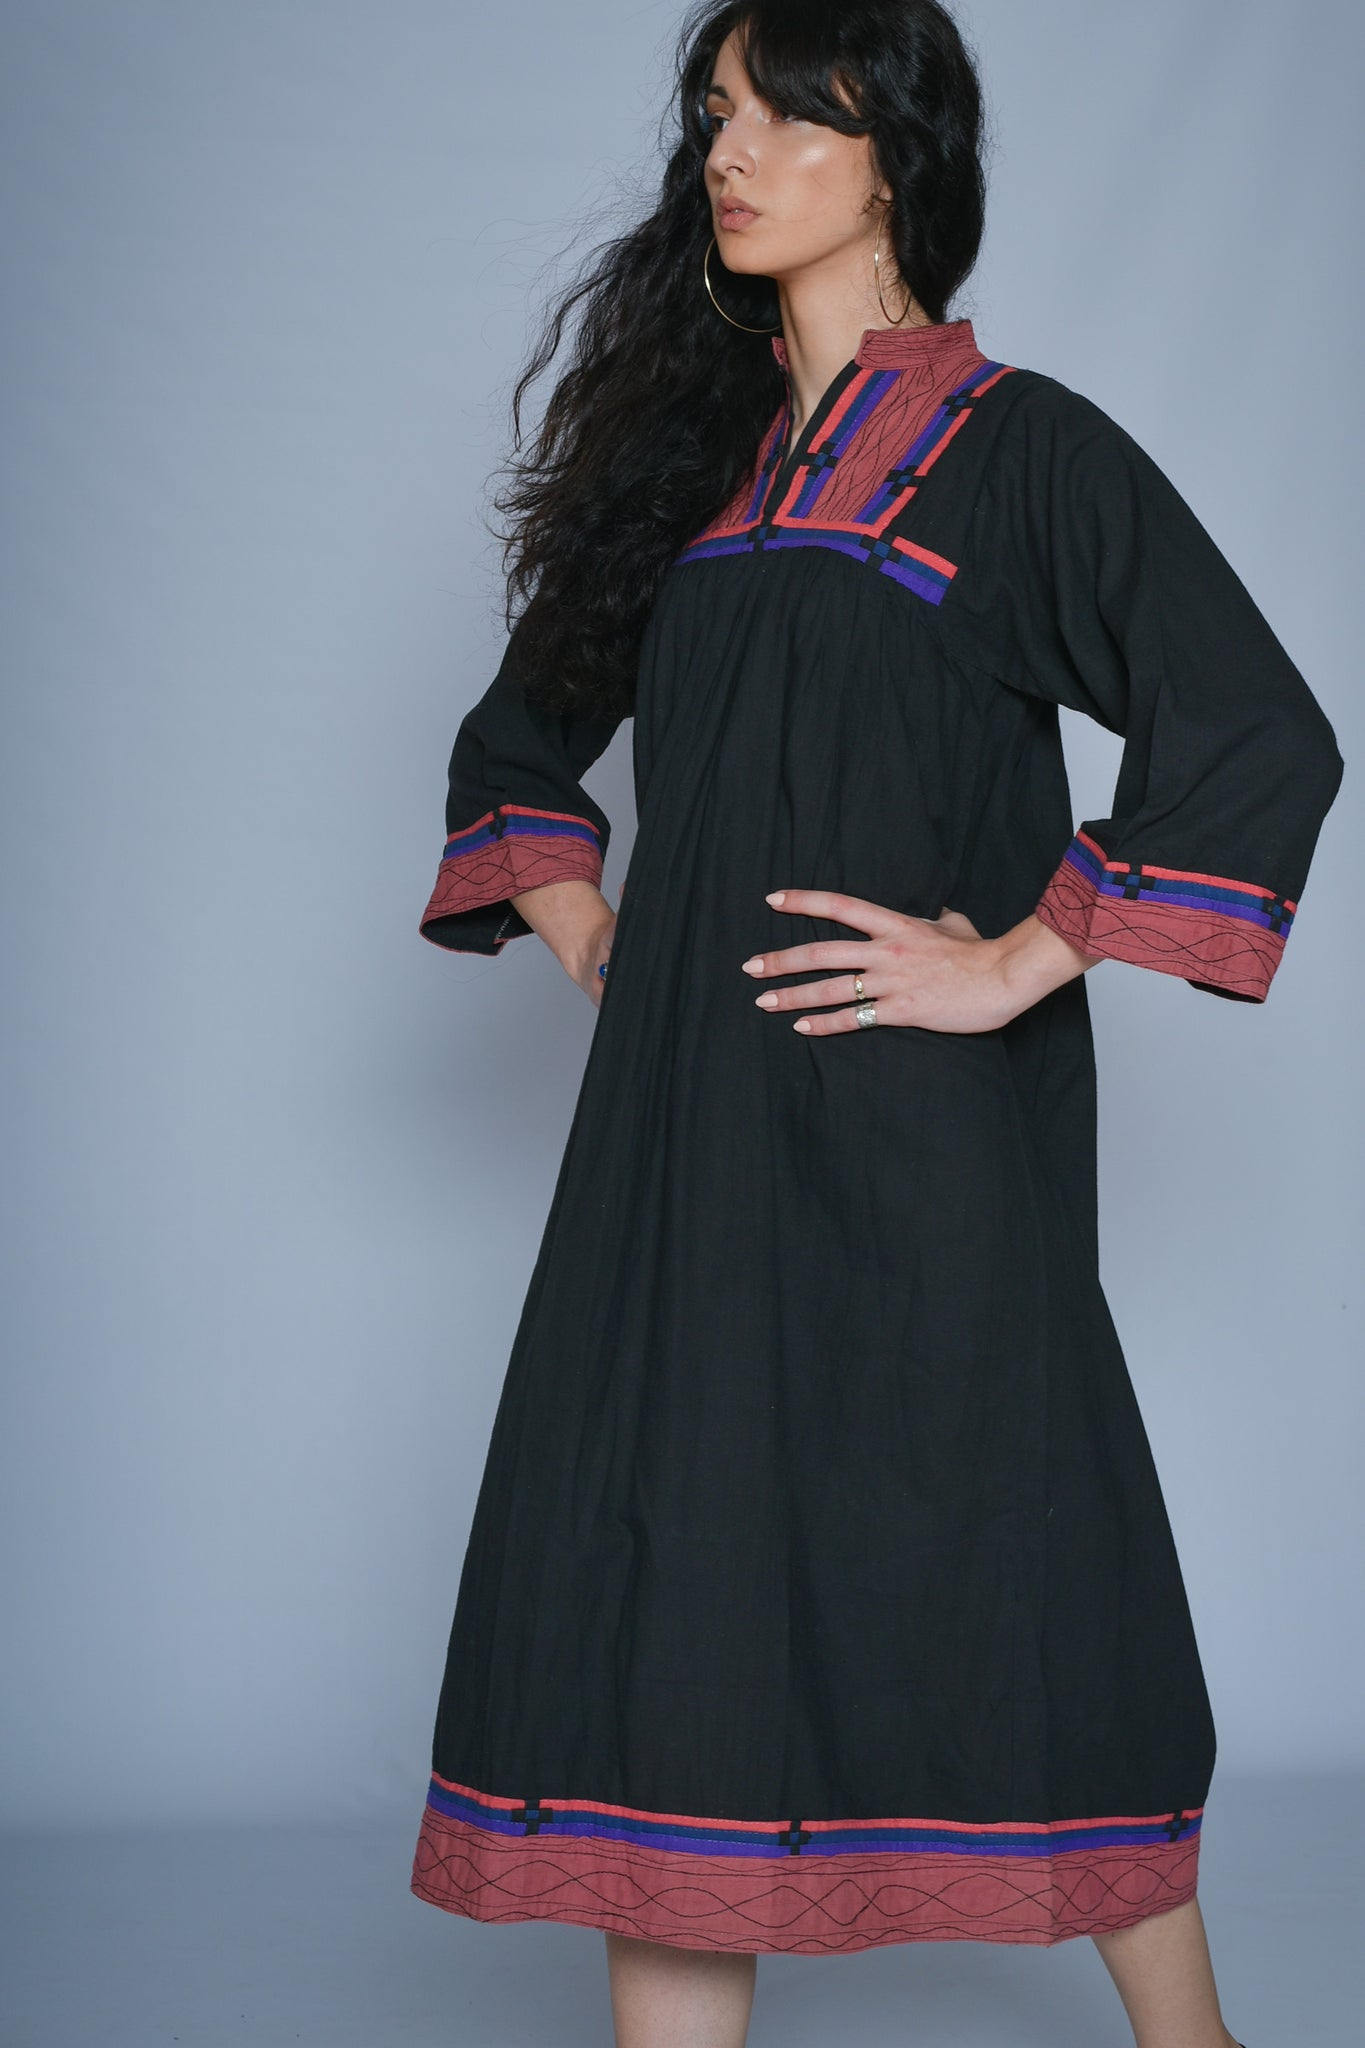 Vintage cotton boho dress in black